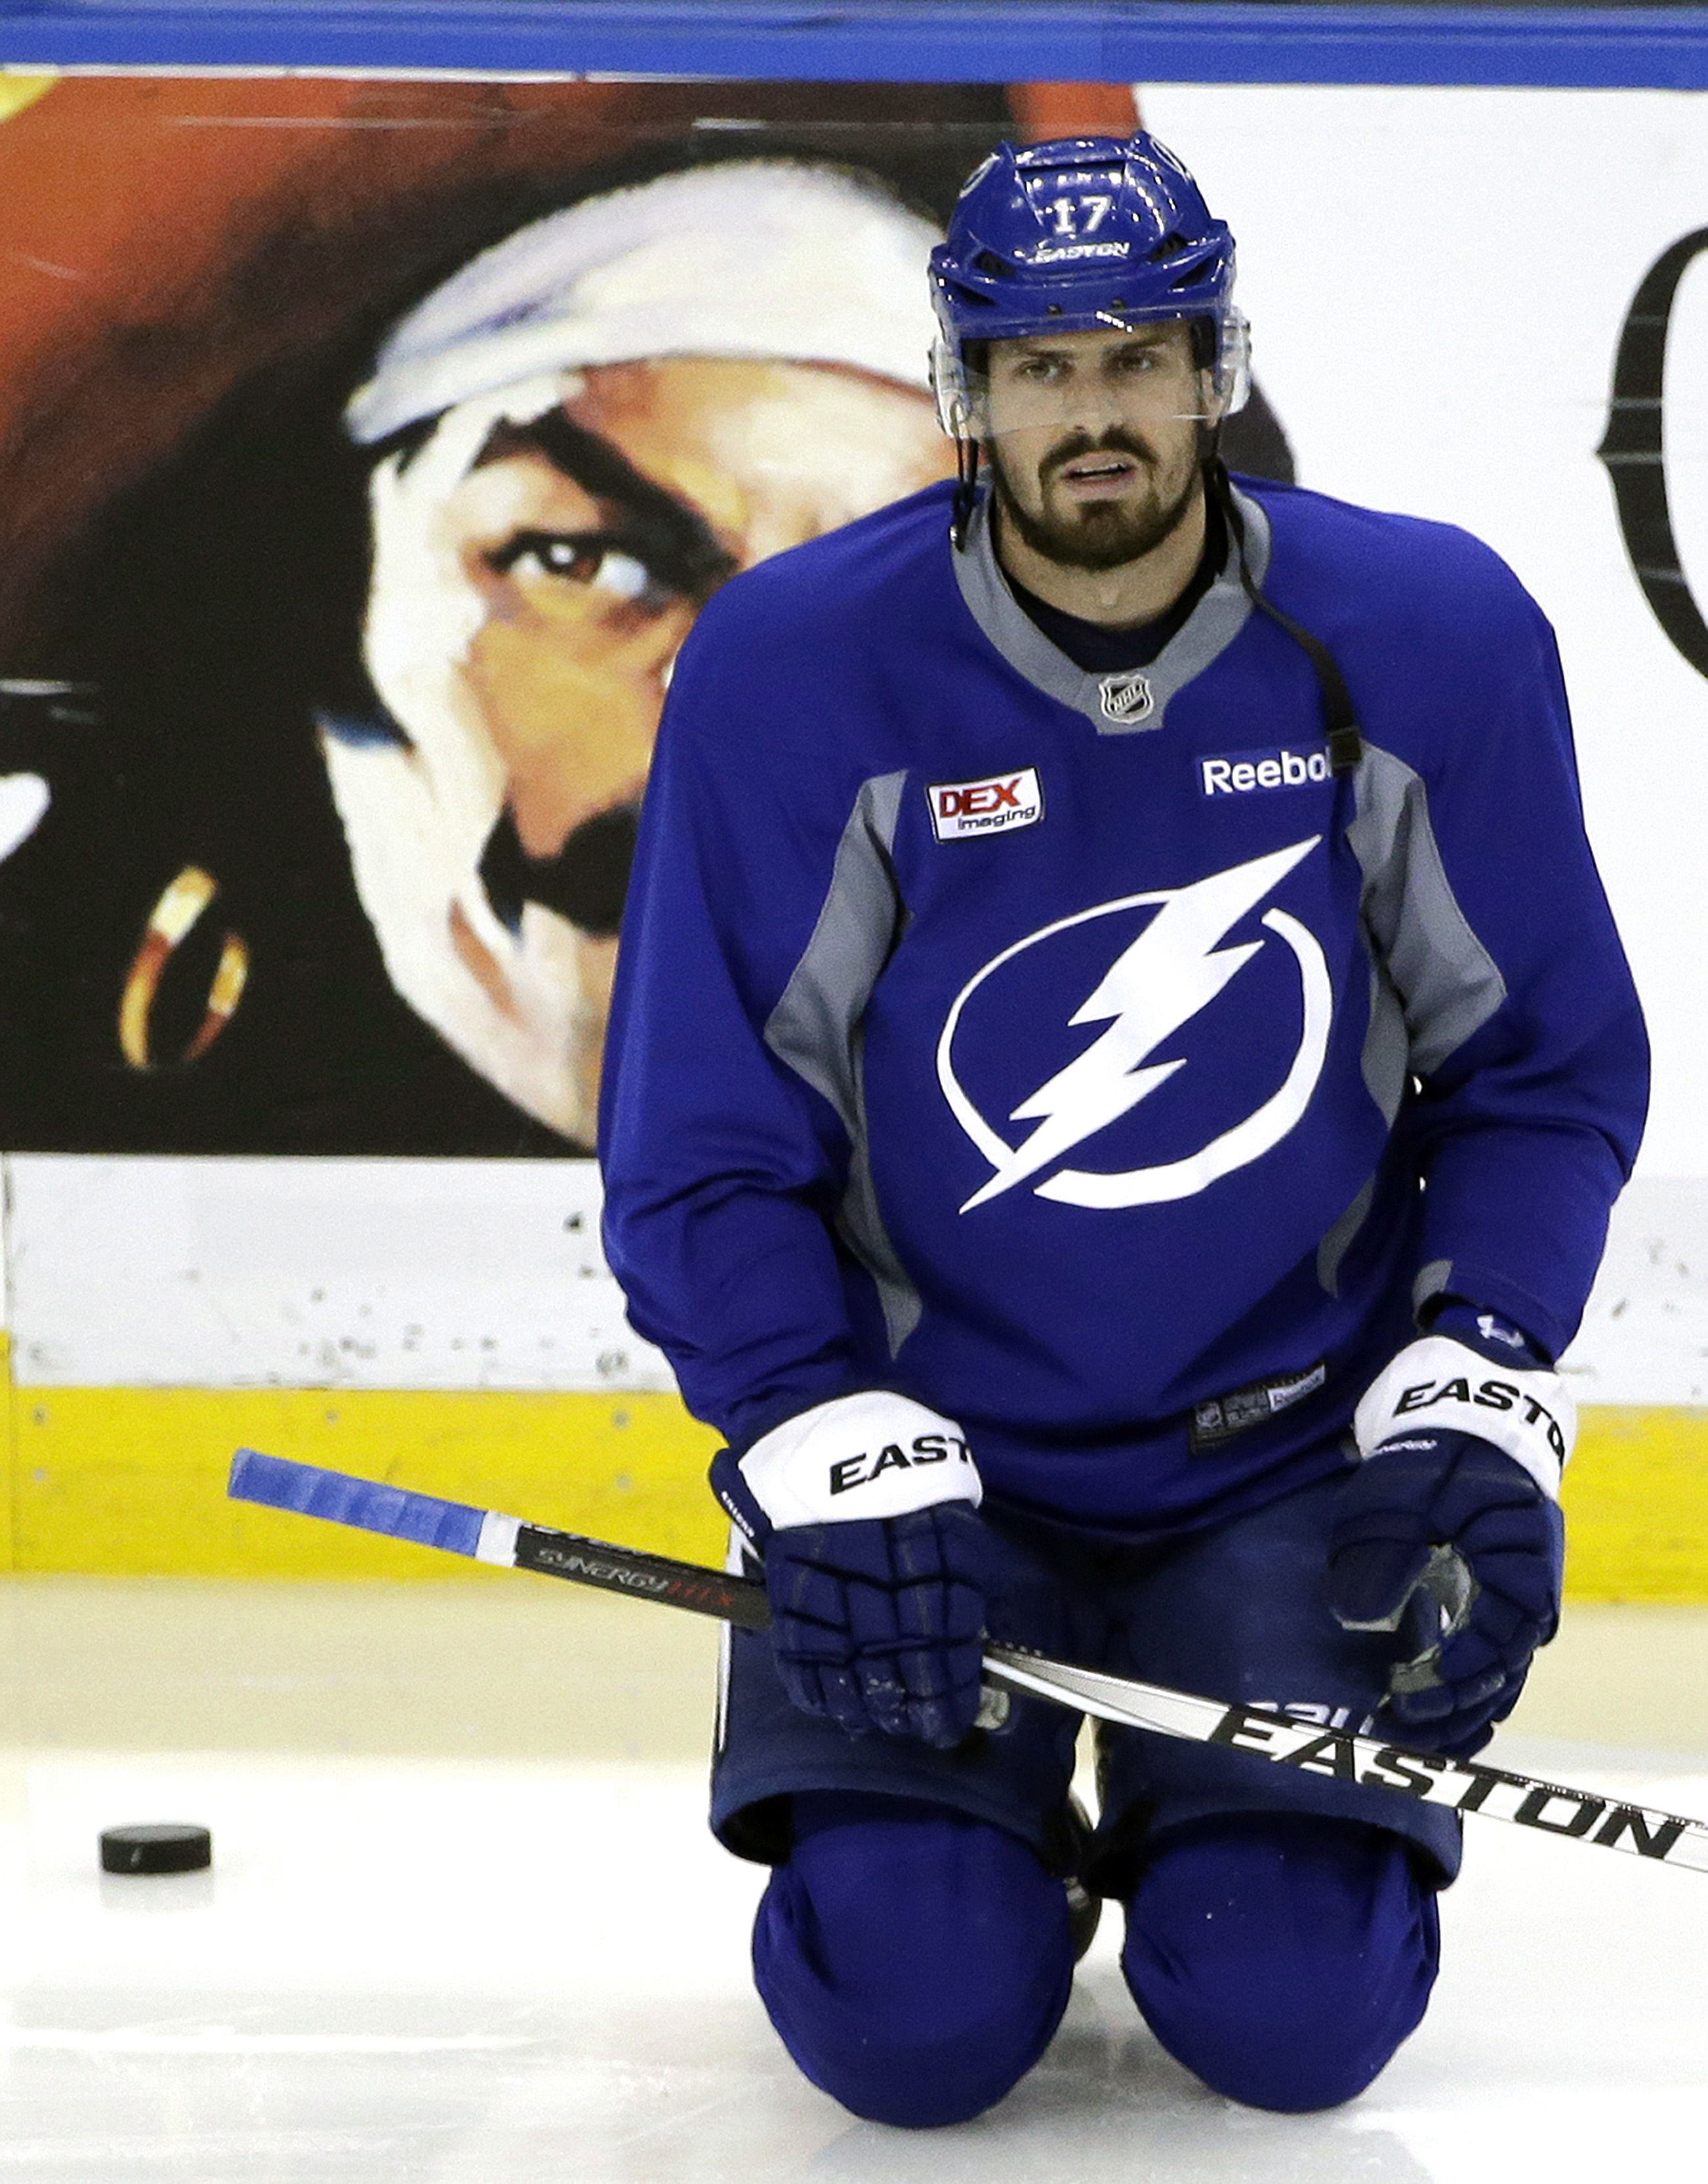 Tampa Bay Lightning center Alex Killorn stretches during NHL hockey practice at Amalie Arena for the Stanley Cup Finals, Tuesday, June 2, 2015, in Tampa, Fla. The Lightning will take on the Chicago Blackhawks in Game 1 on Wednesday.  (AP Photo/Chris O'Mea